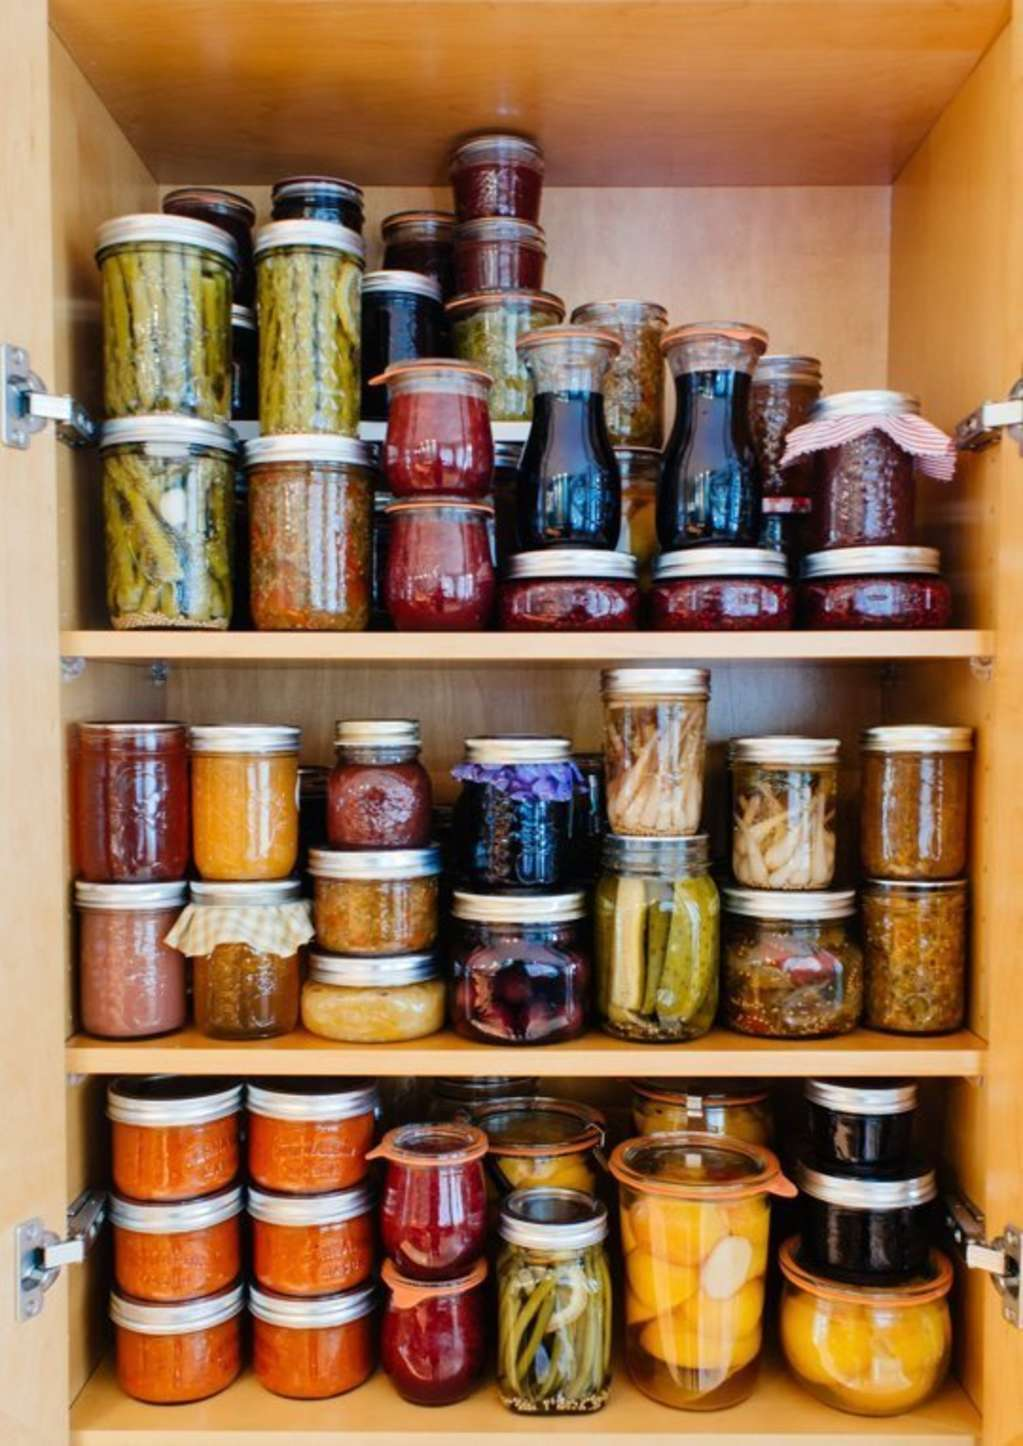 10 Ways to Squeeze a Little Extra Storage Out of a Small Pantry